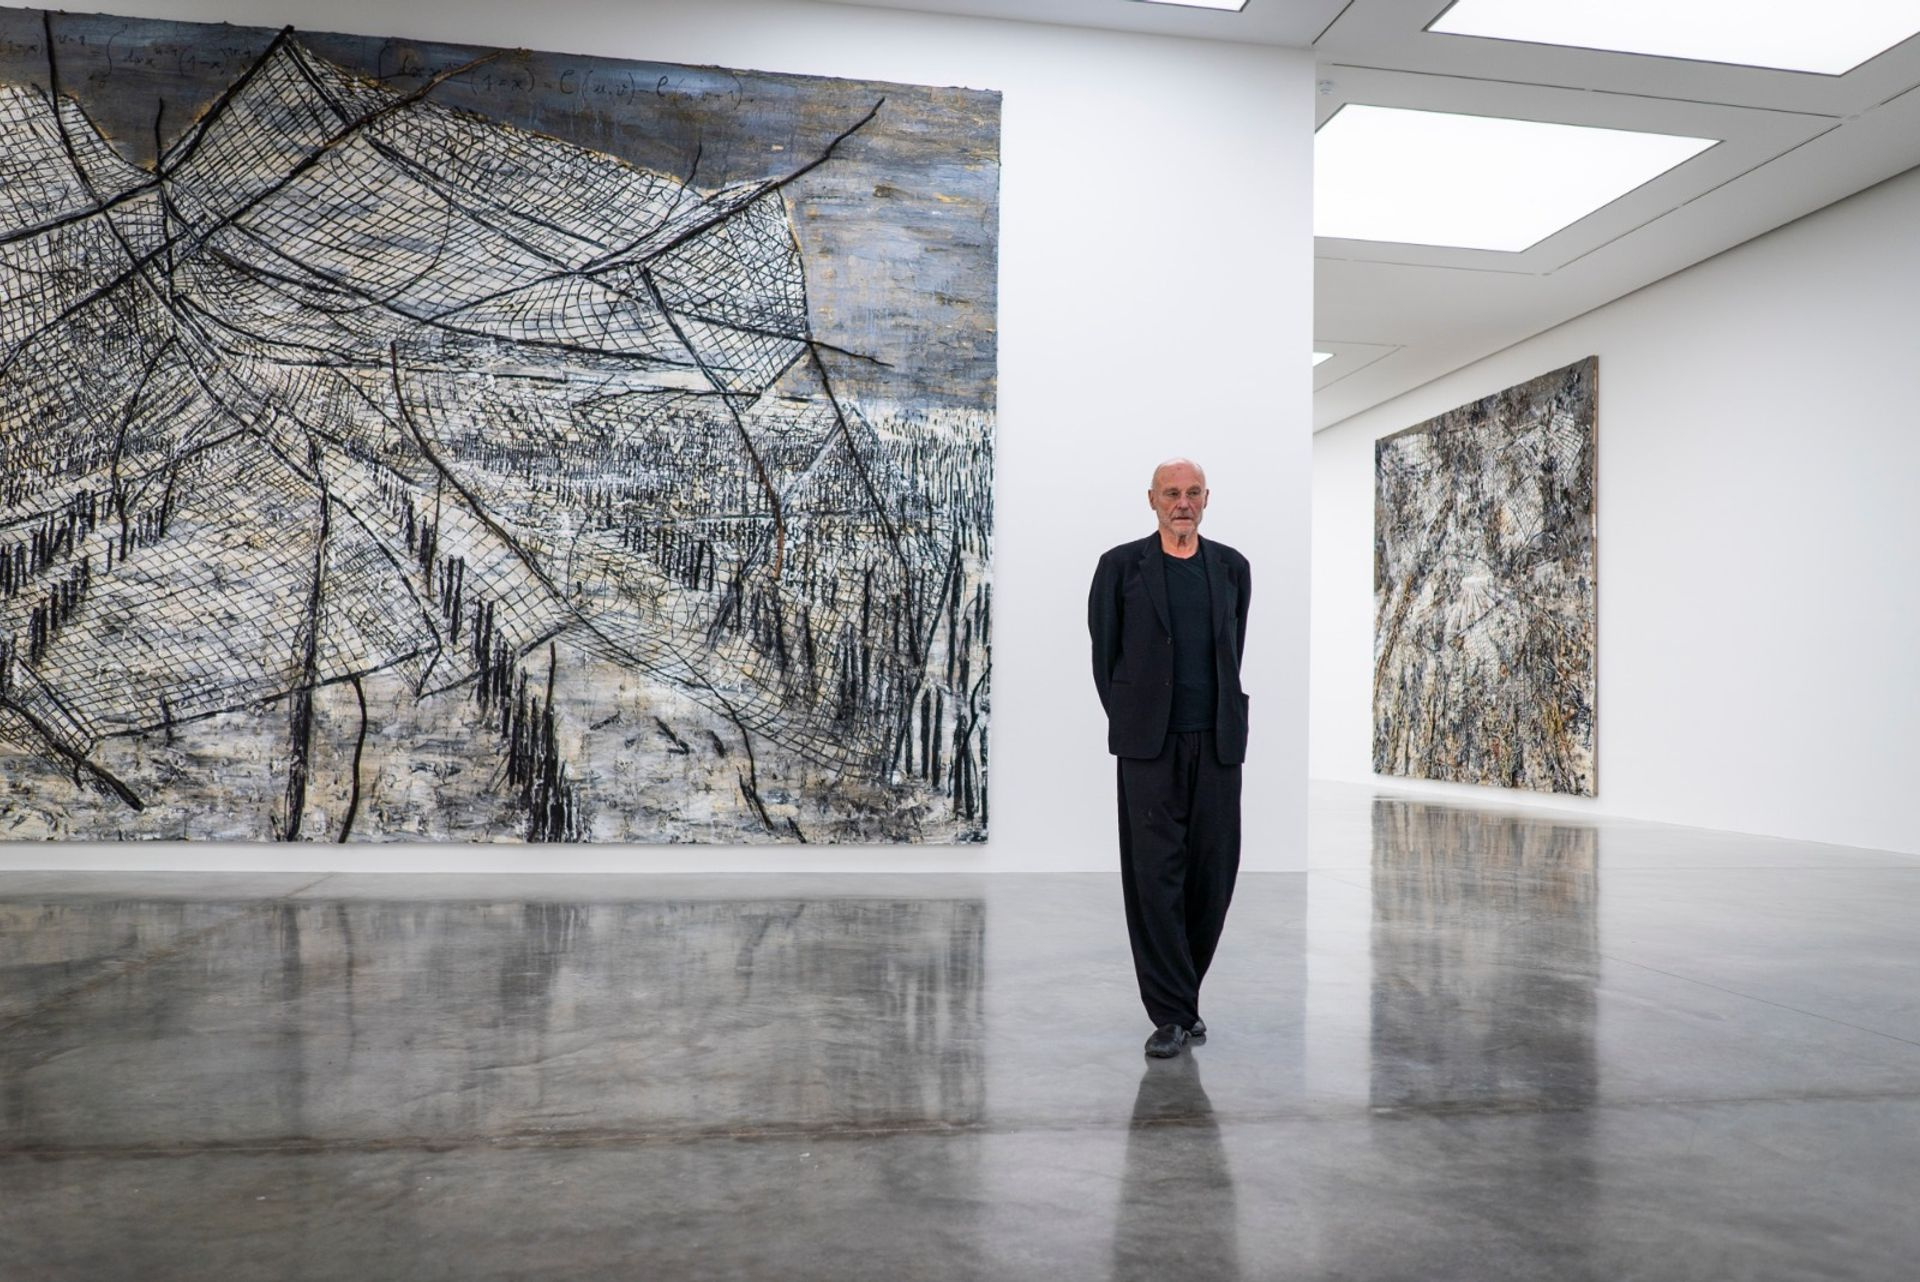 Anselm Kiefer at his exhibition Superstrings, Runes, The Norns, Gordian Knot at White Cube Bermondsey Photo: David Clack